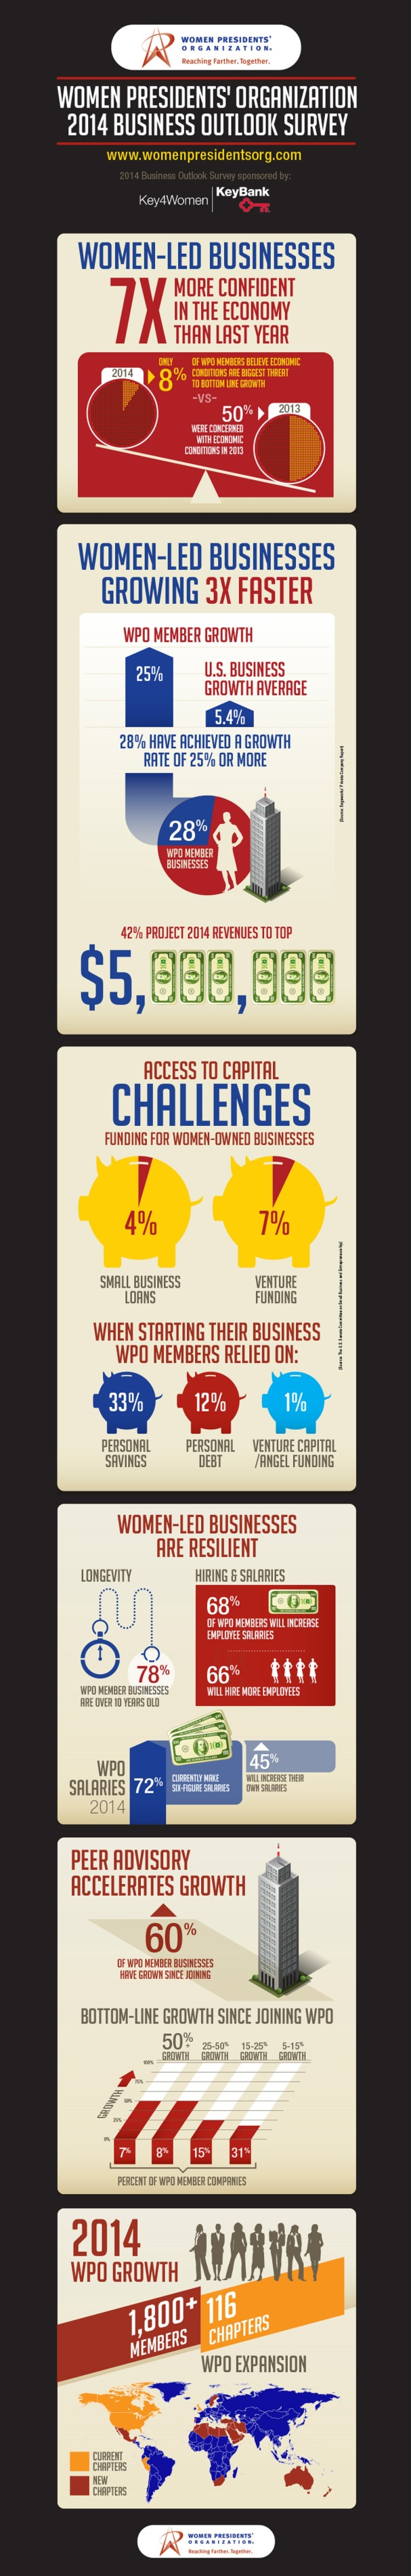 WPO-Business Outlook Survey InfoGraphic-2014 resized